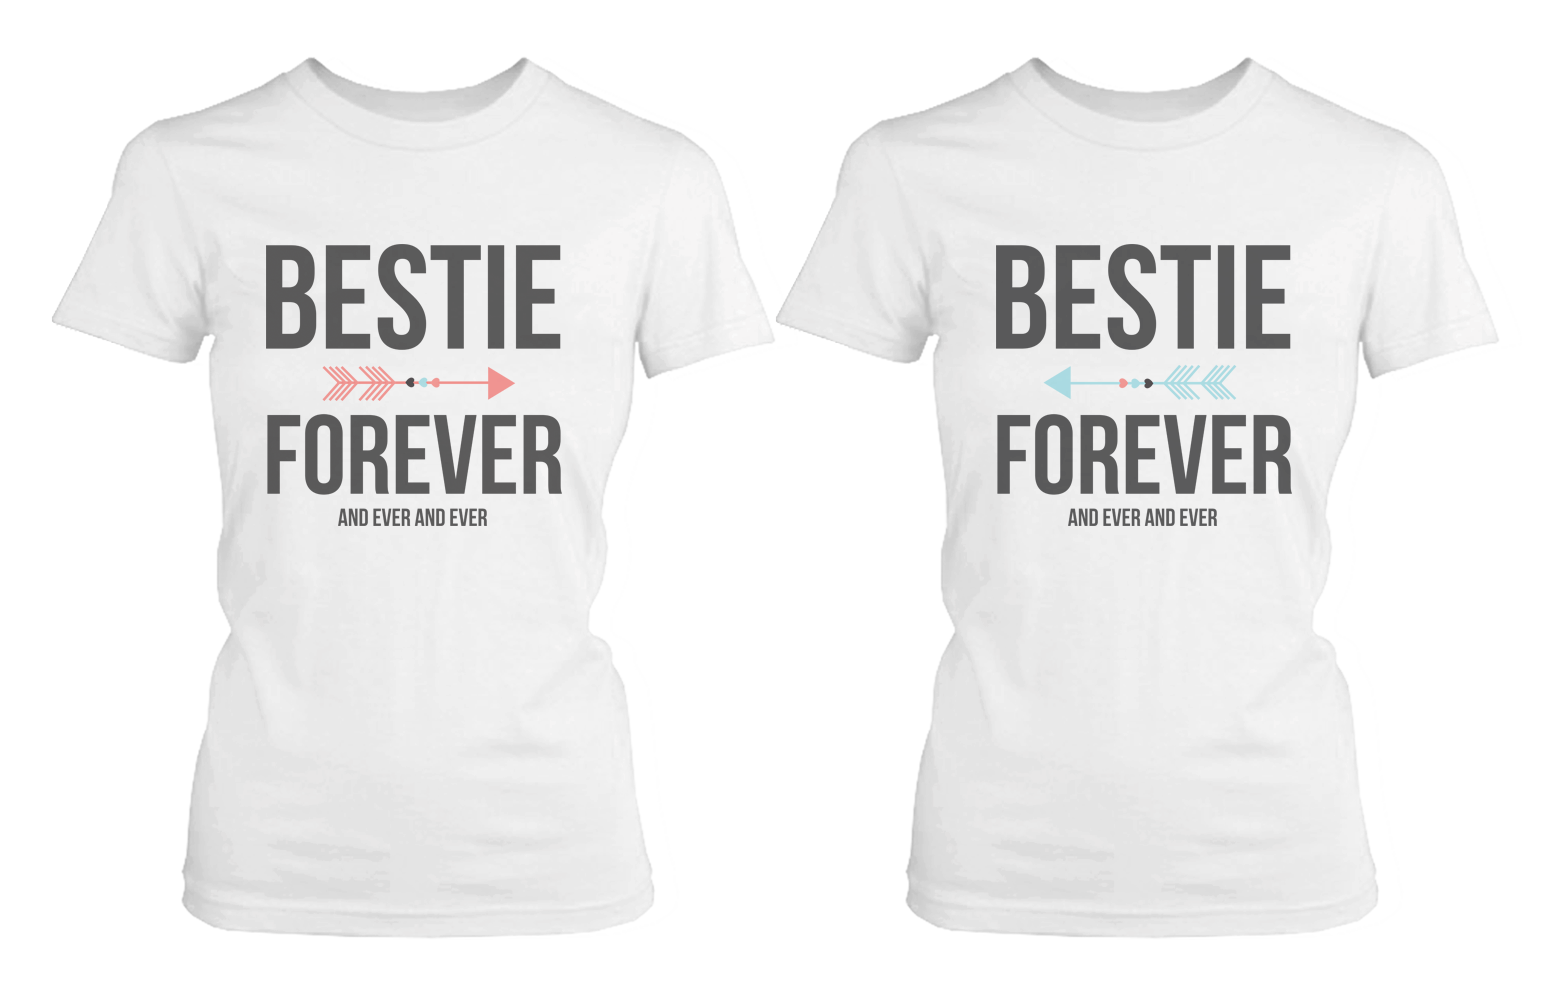 Cute Best Friends Shirt Designs 36